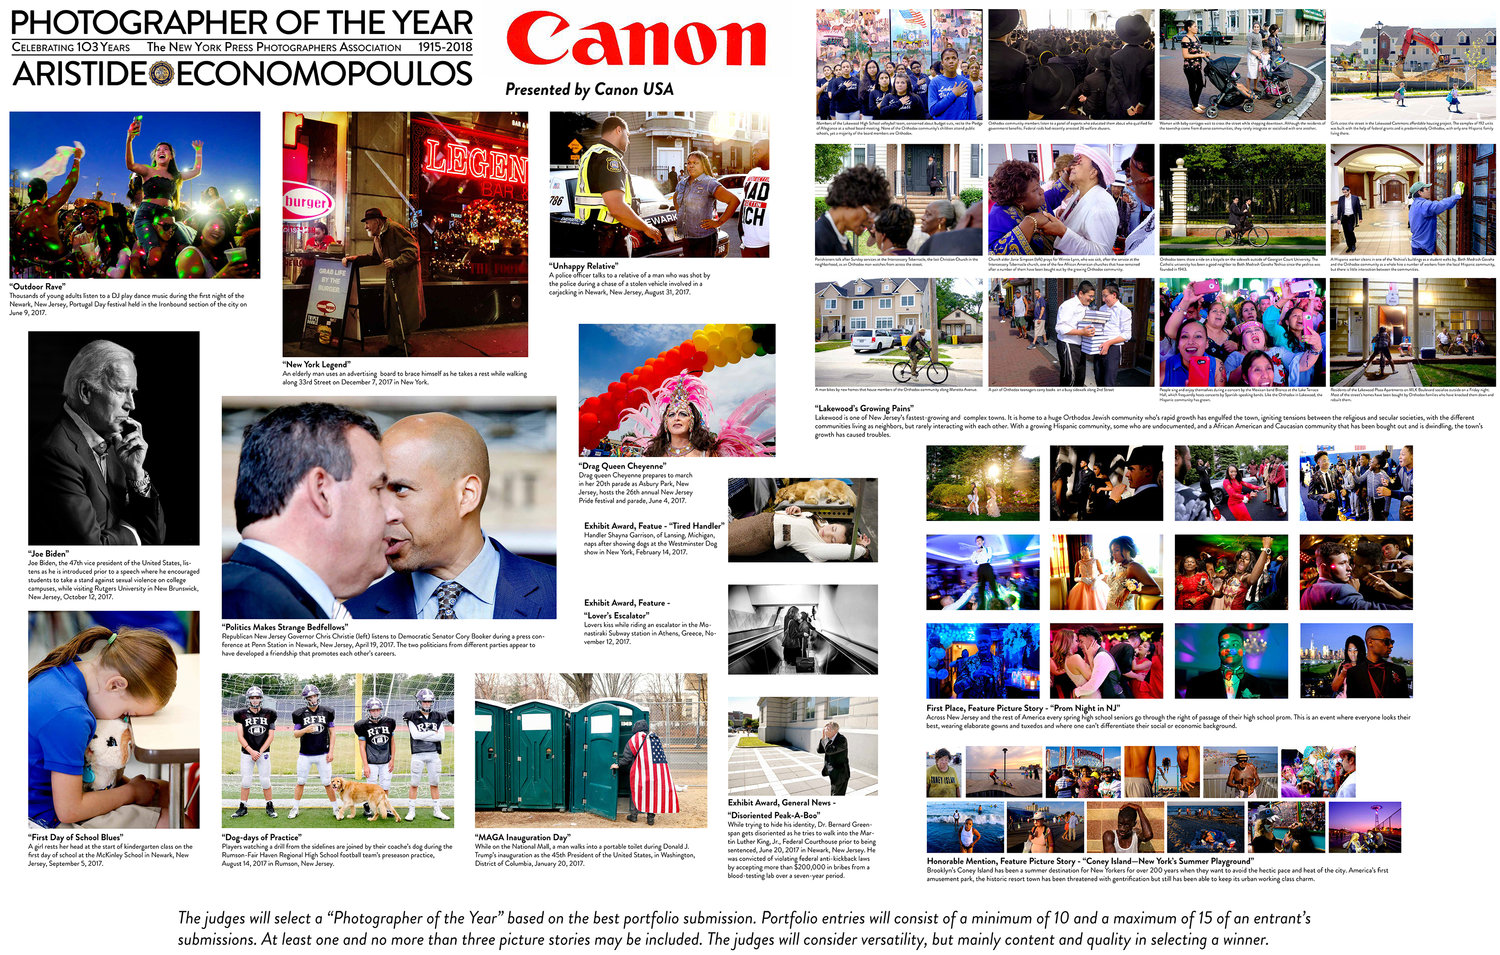 2017 Year in Pictures — New York Press Photographers Association, Inc